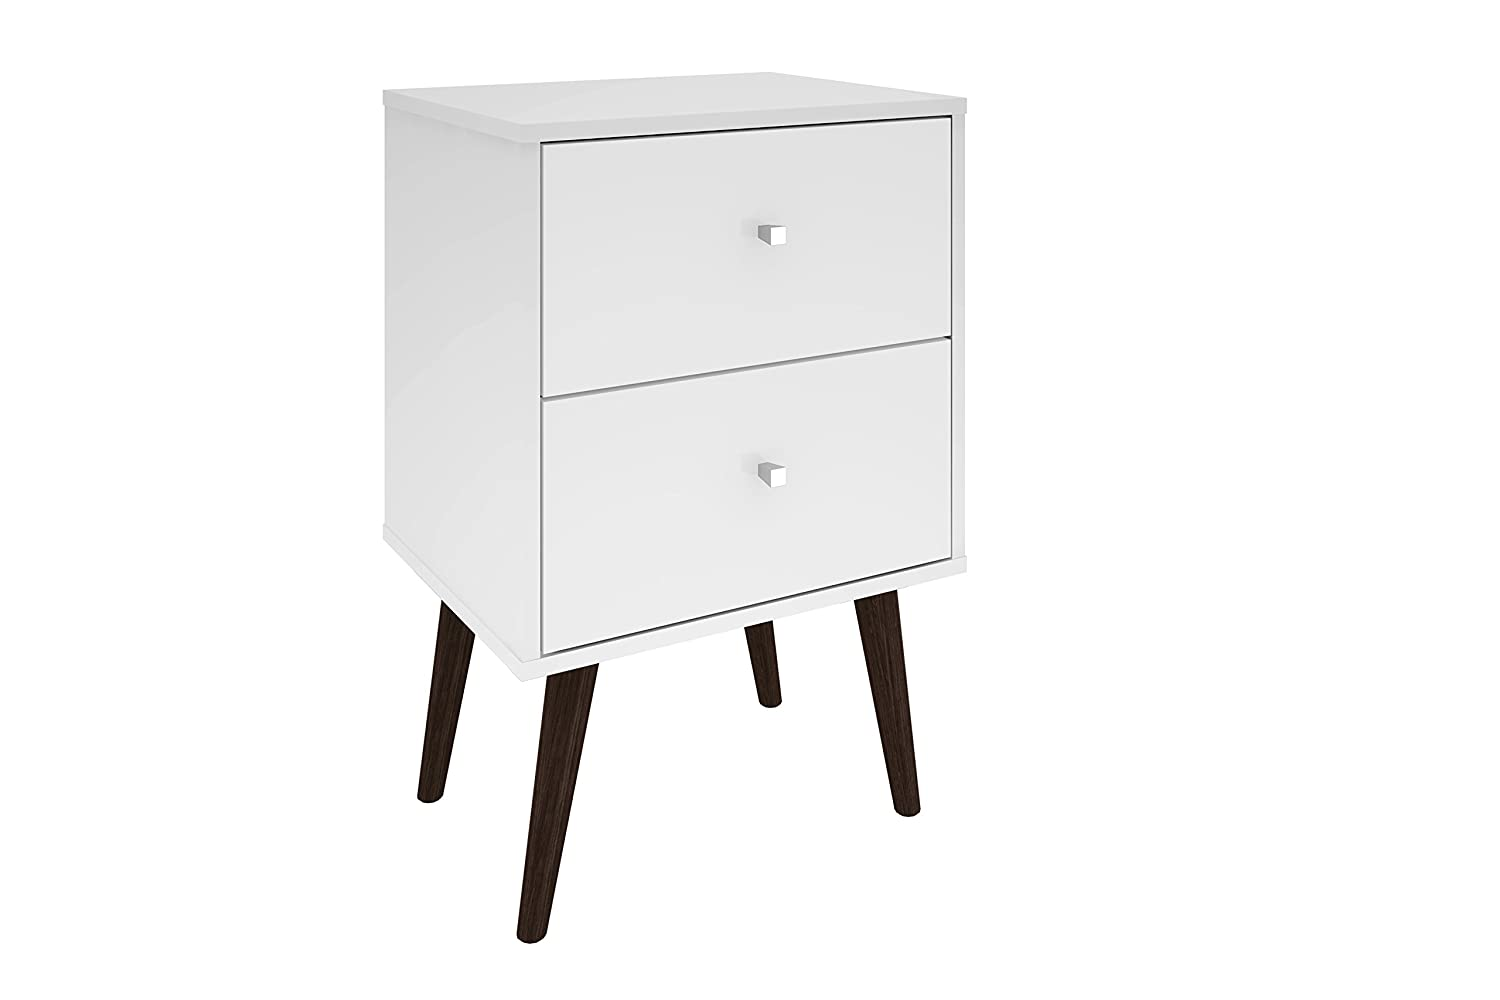 Manhattan Comfort Liberty Collection Mid Century Modern Nightstand With Two Drawers, Splayed Legs, White